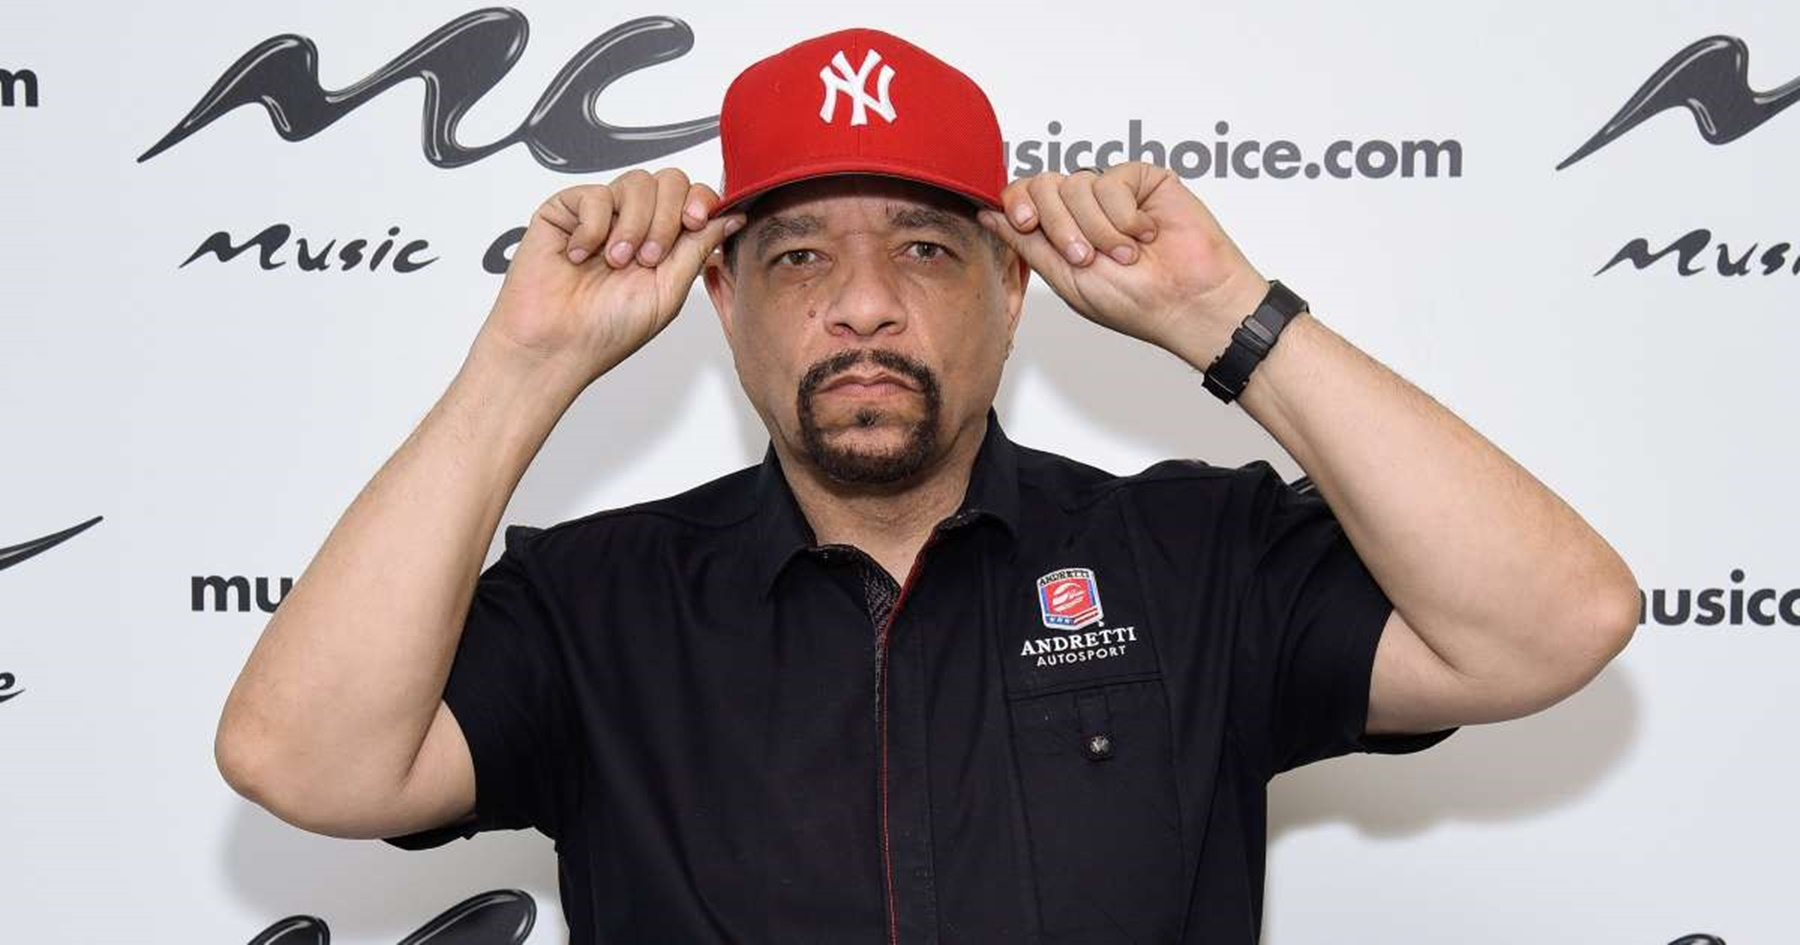 ice-t-claims-he-was-close-to-shooting-unmarked-amazon-driver-here-is-why-the-companys-response-missed-the-mark